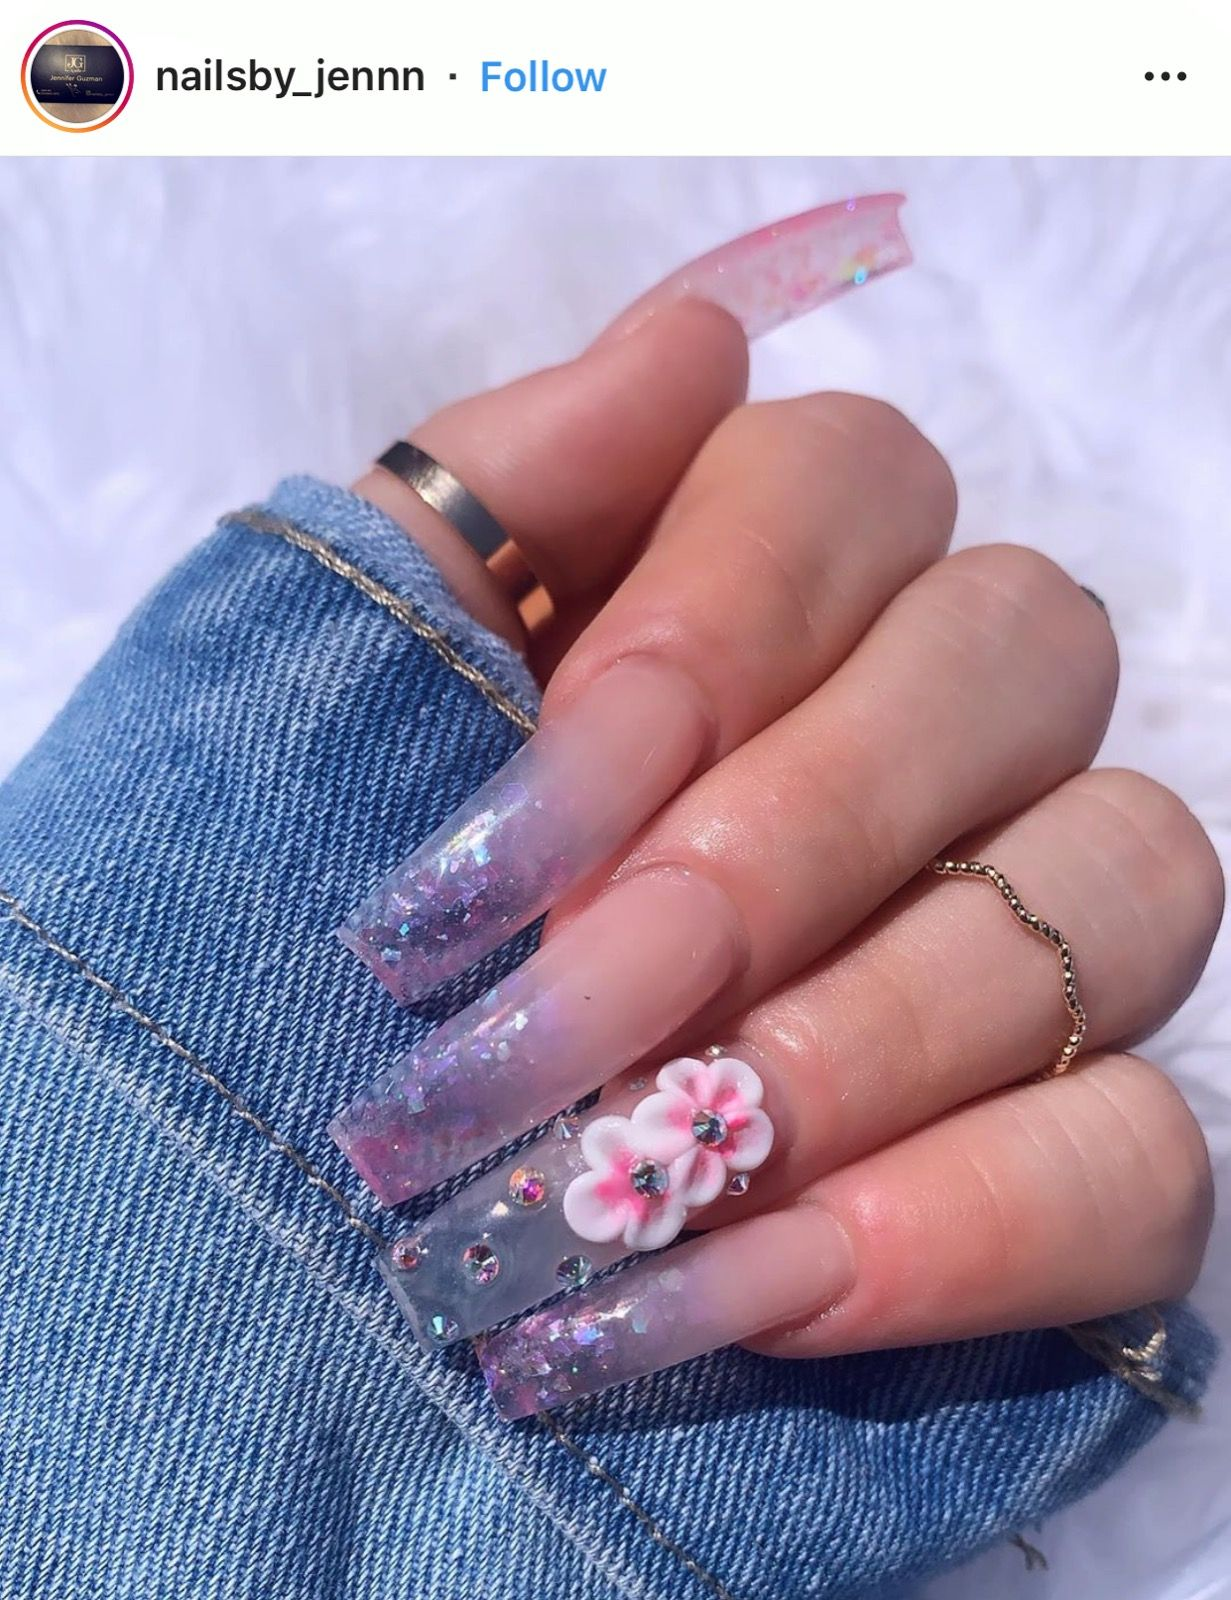 Pin by rae 🦋 on nails  in 2019 | Gel nails, Coffin nails